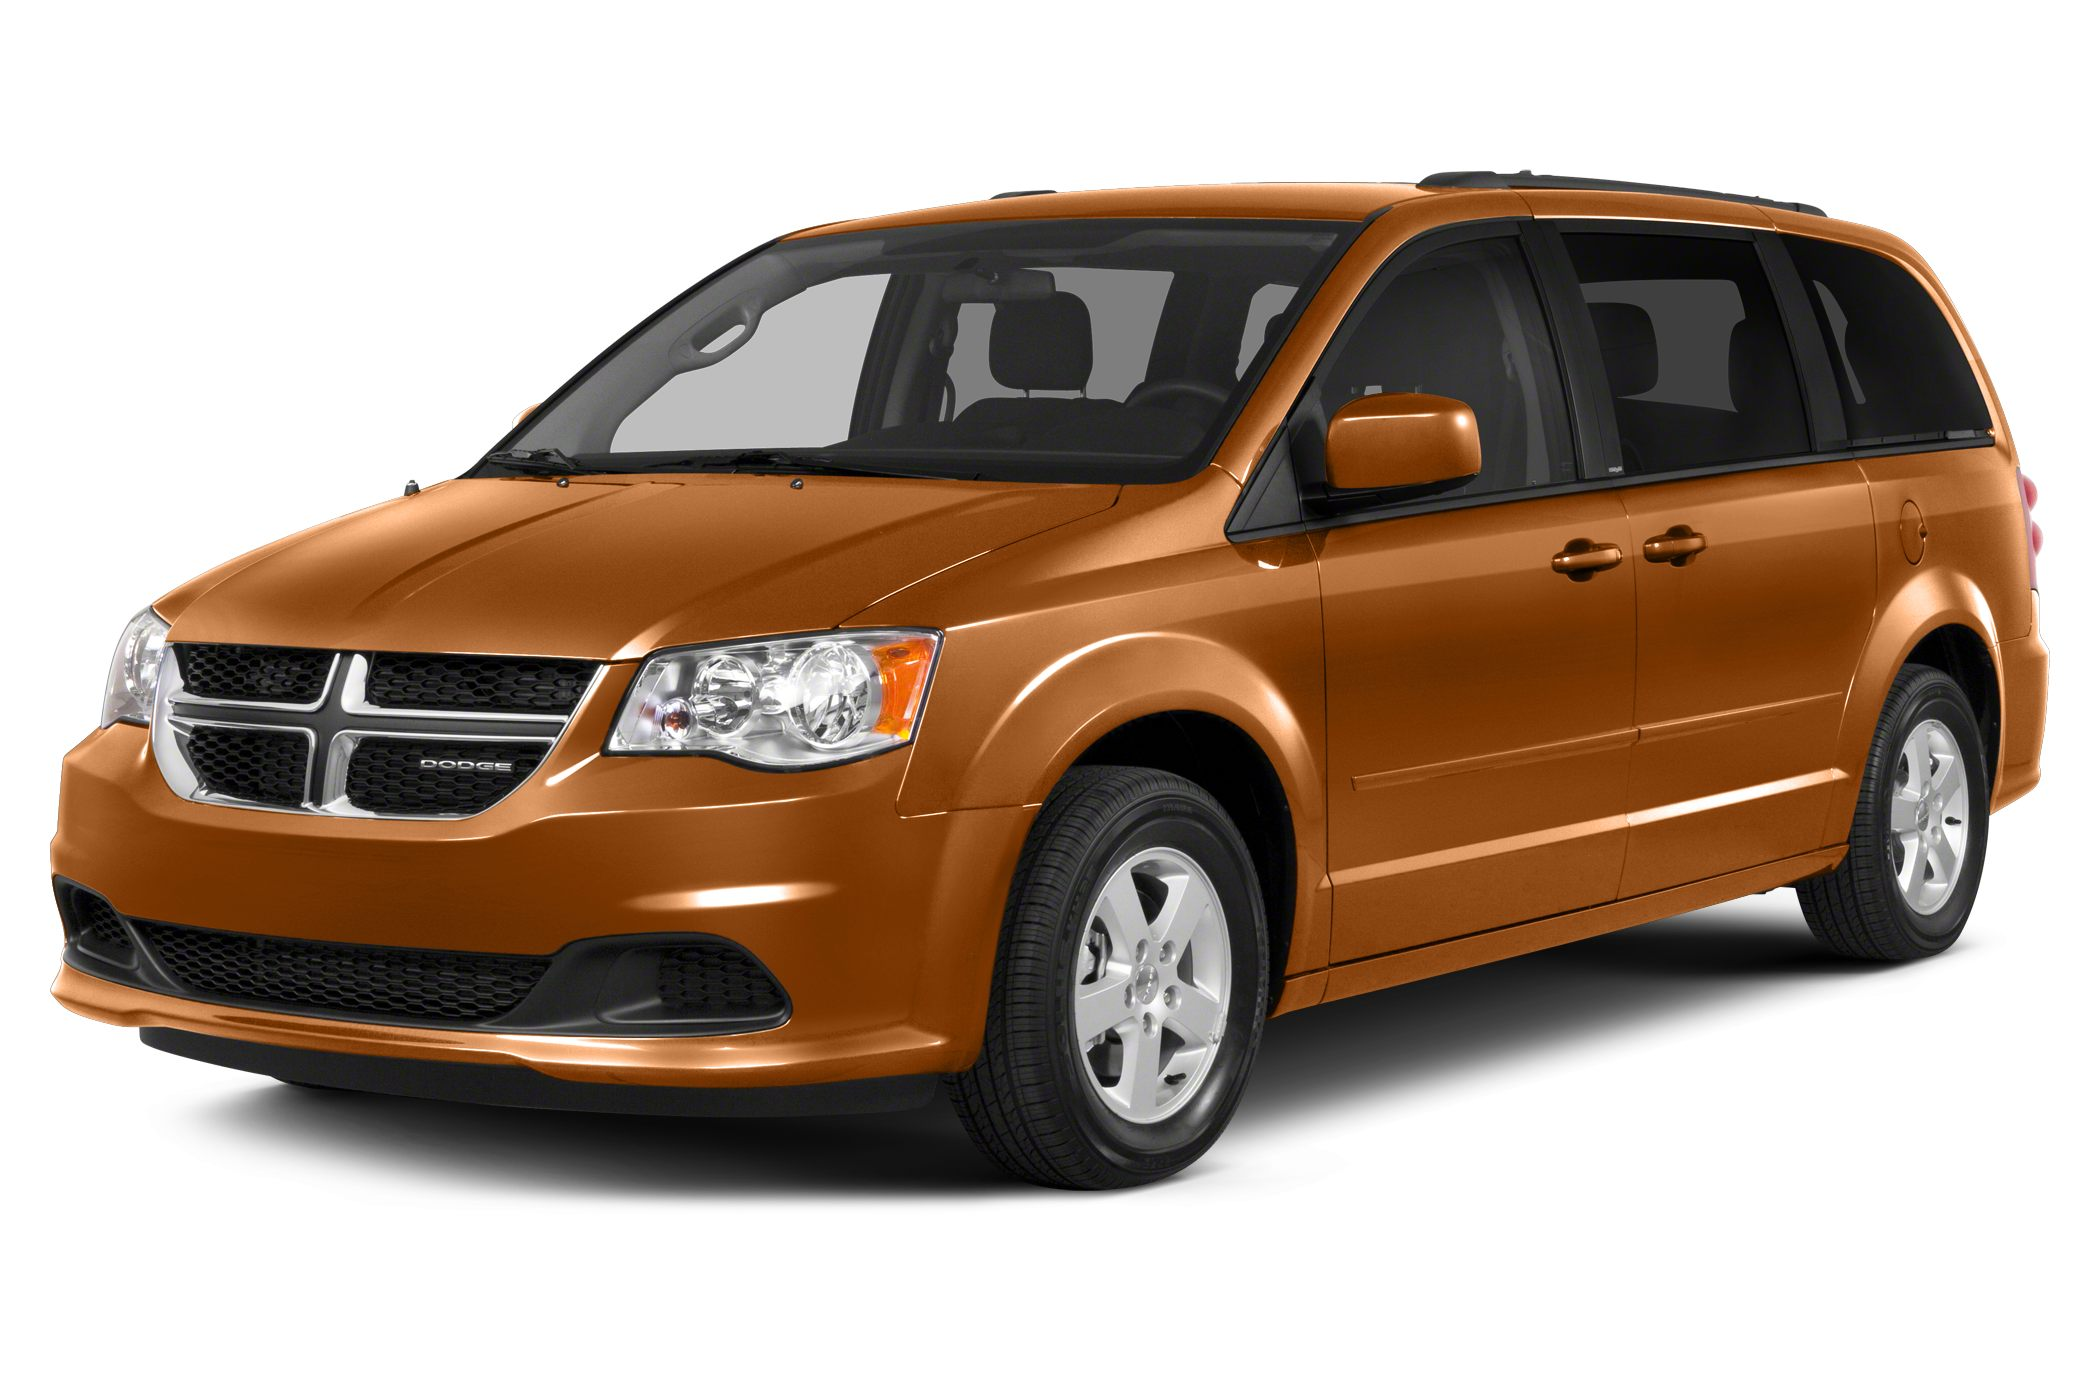 2014 Dodge Grand Caravan SXT There is no better time than now to buy this awesome MiniVan ready t